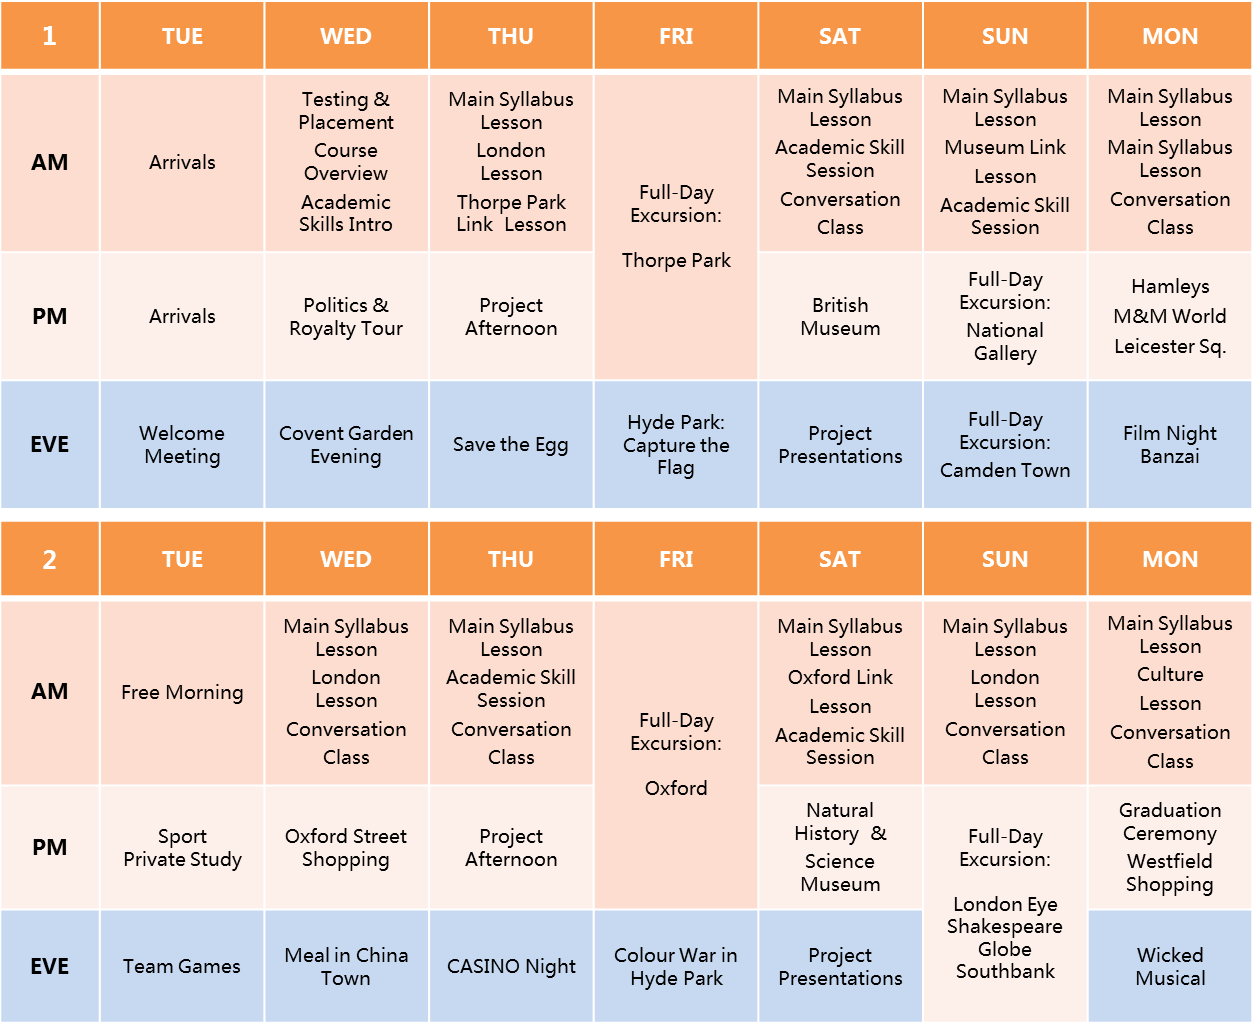 Kings College London English Cultural Timetable 2016